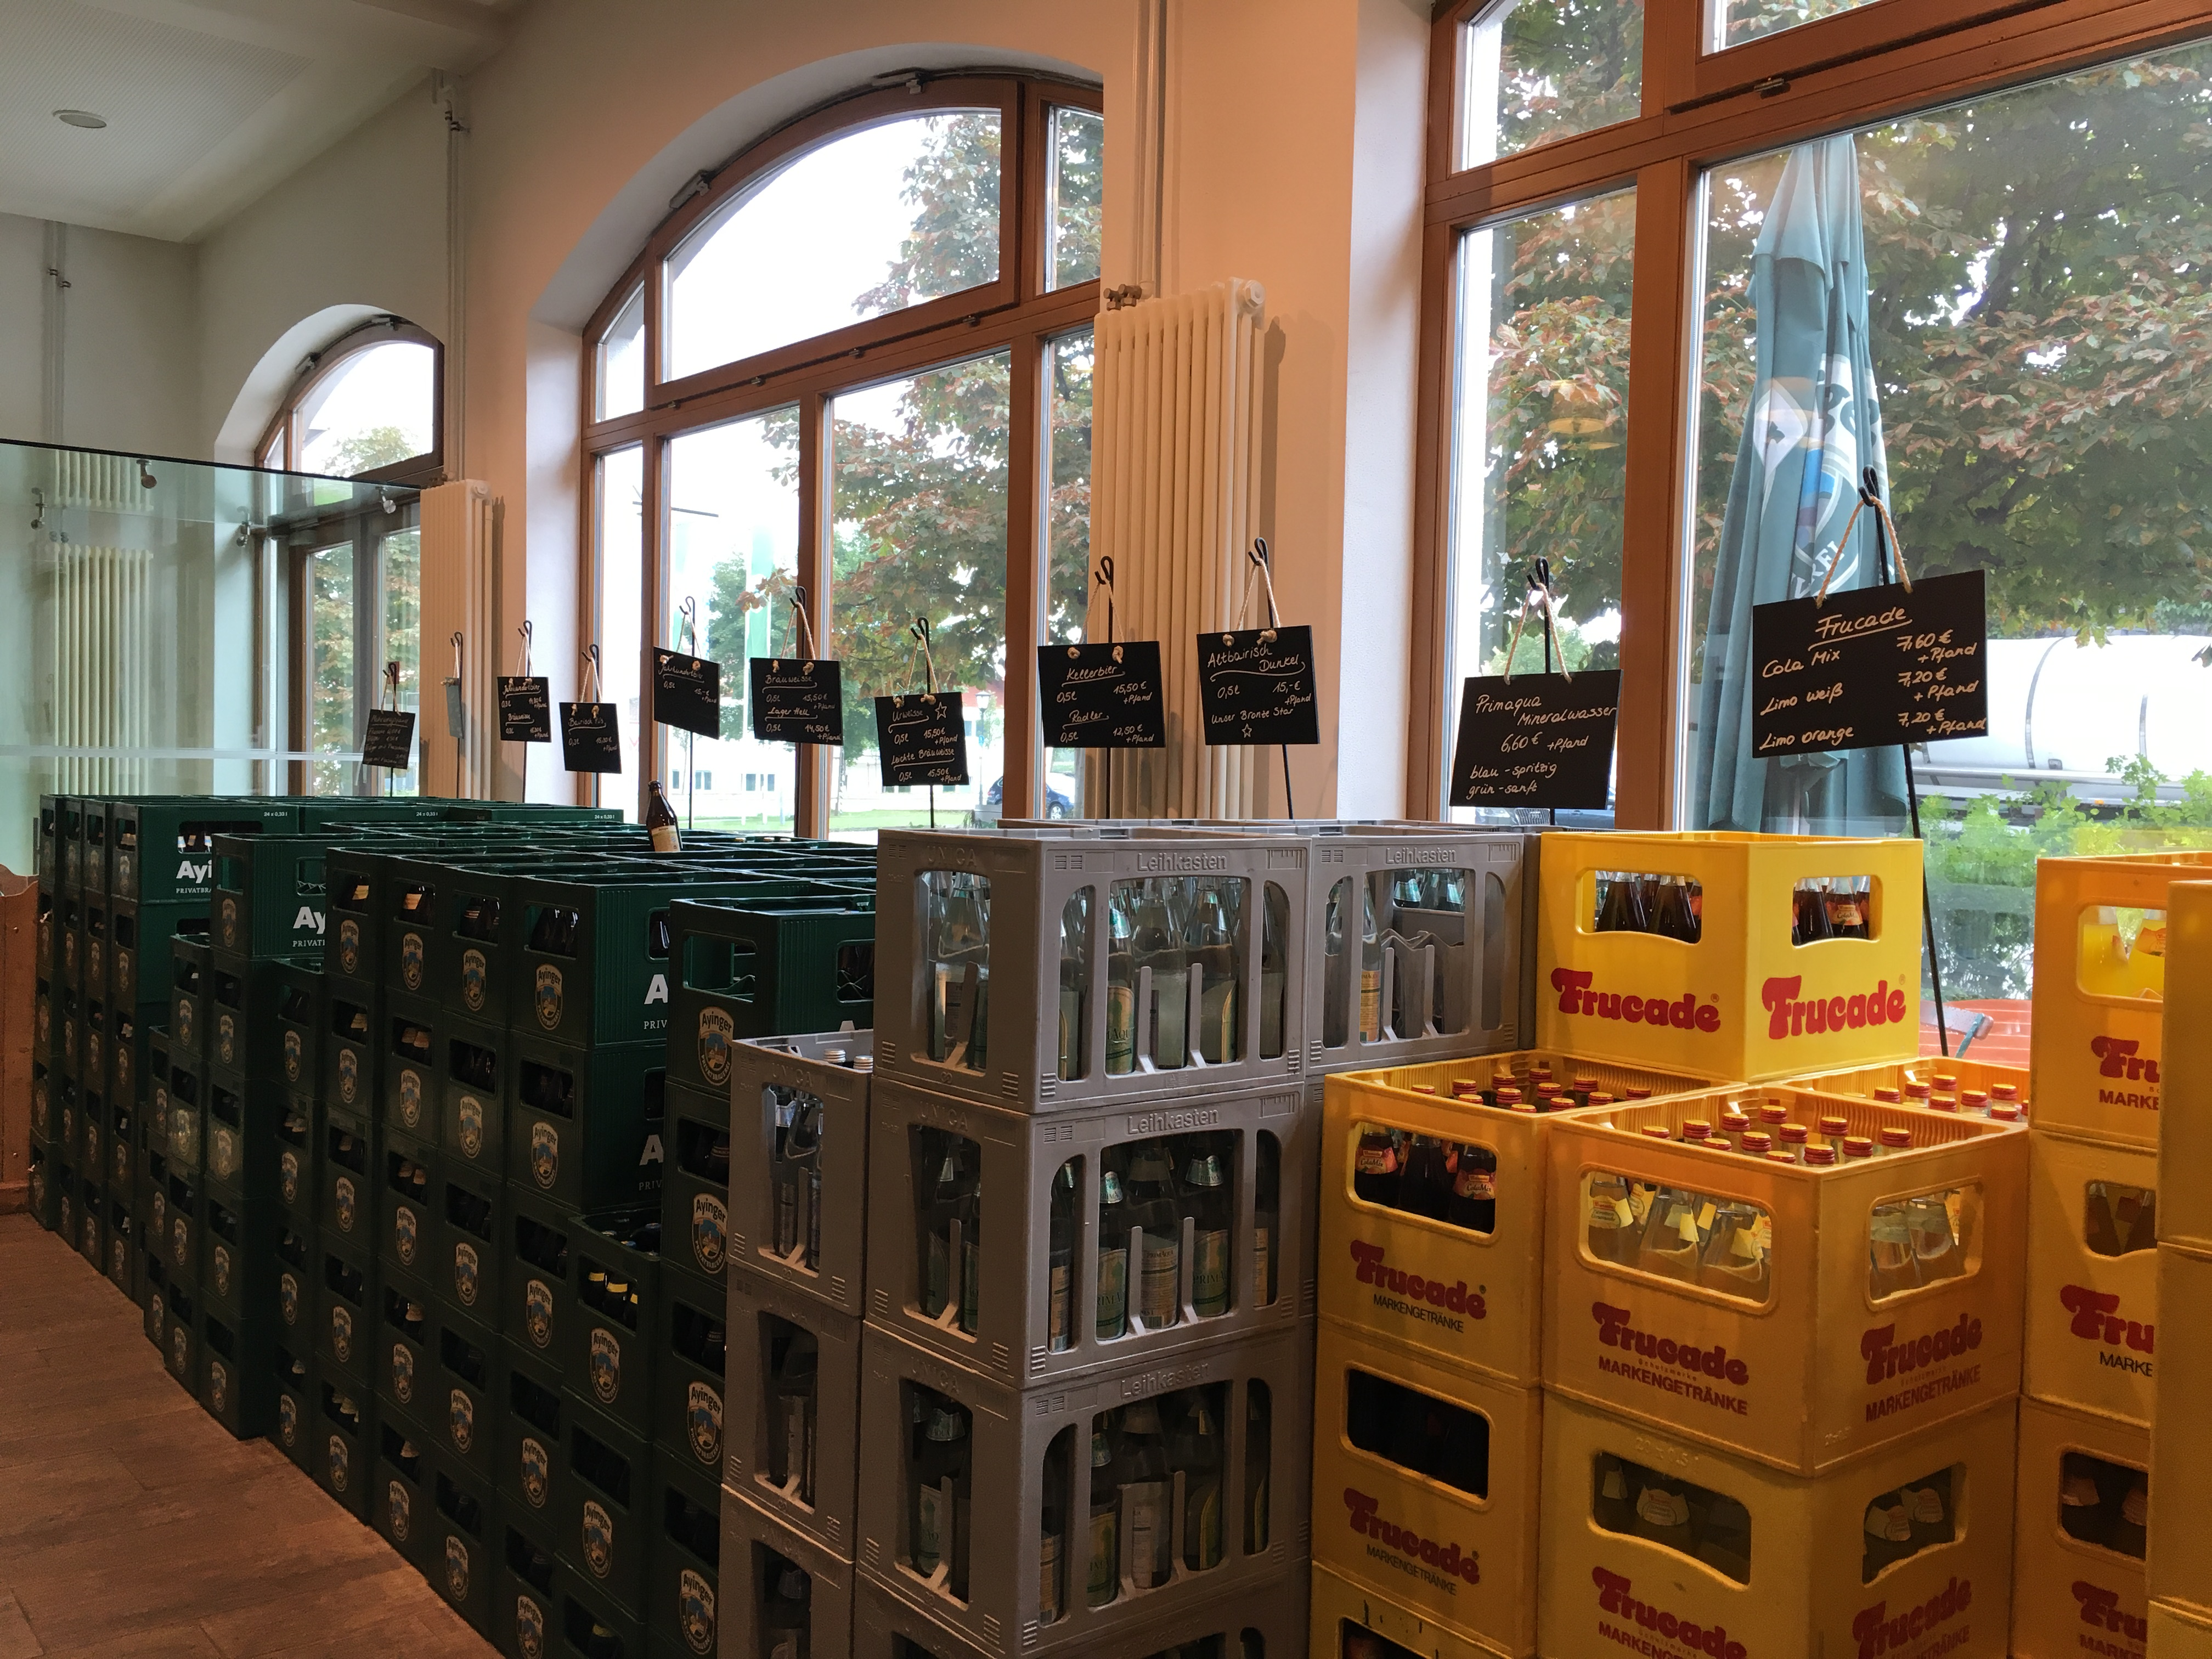 Many beer choices inside the Ayinger gift shop.